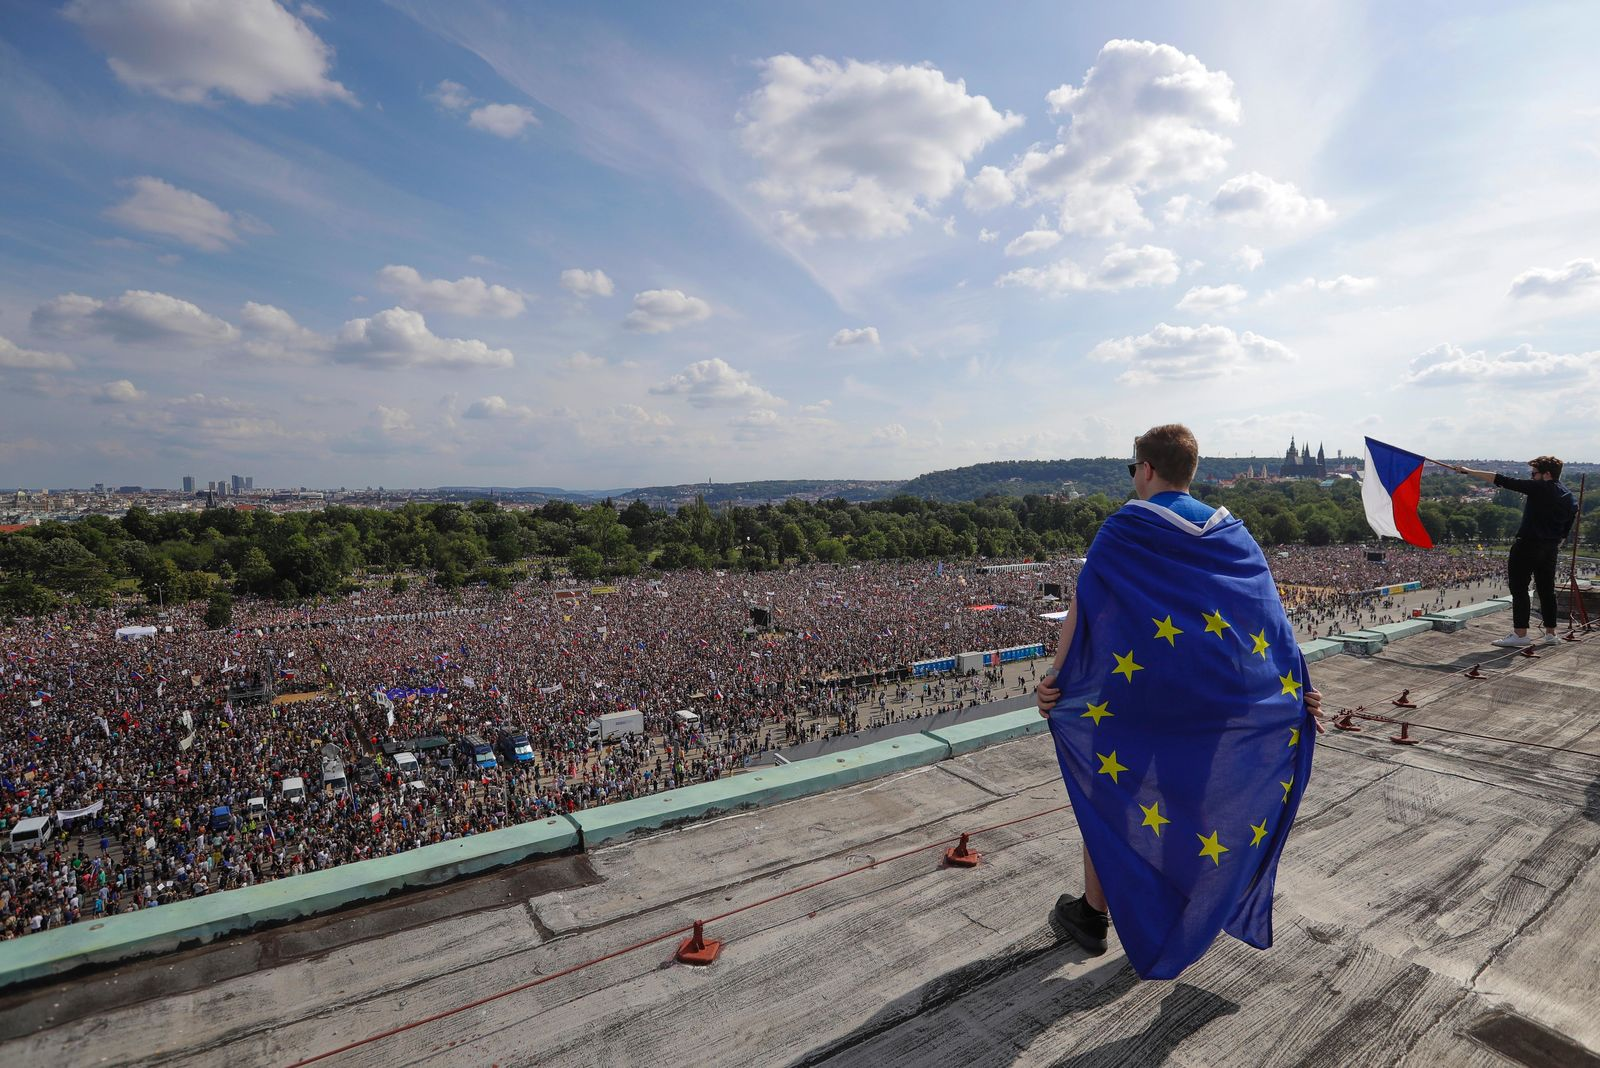 A man wrapped in in an European Union flag watches protesters gather in Prague, Czech Republic, Sunday, June 23, 2019. Protesters are on calling on Czech Prime Minister Andrej Babis to step down over fraud allegations and subsidies paid to his former companies. (AP Photo/Petr David Josek)